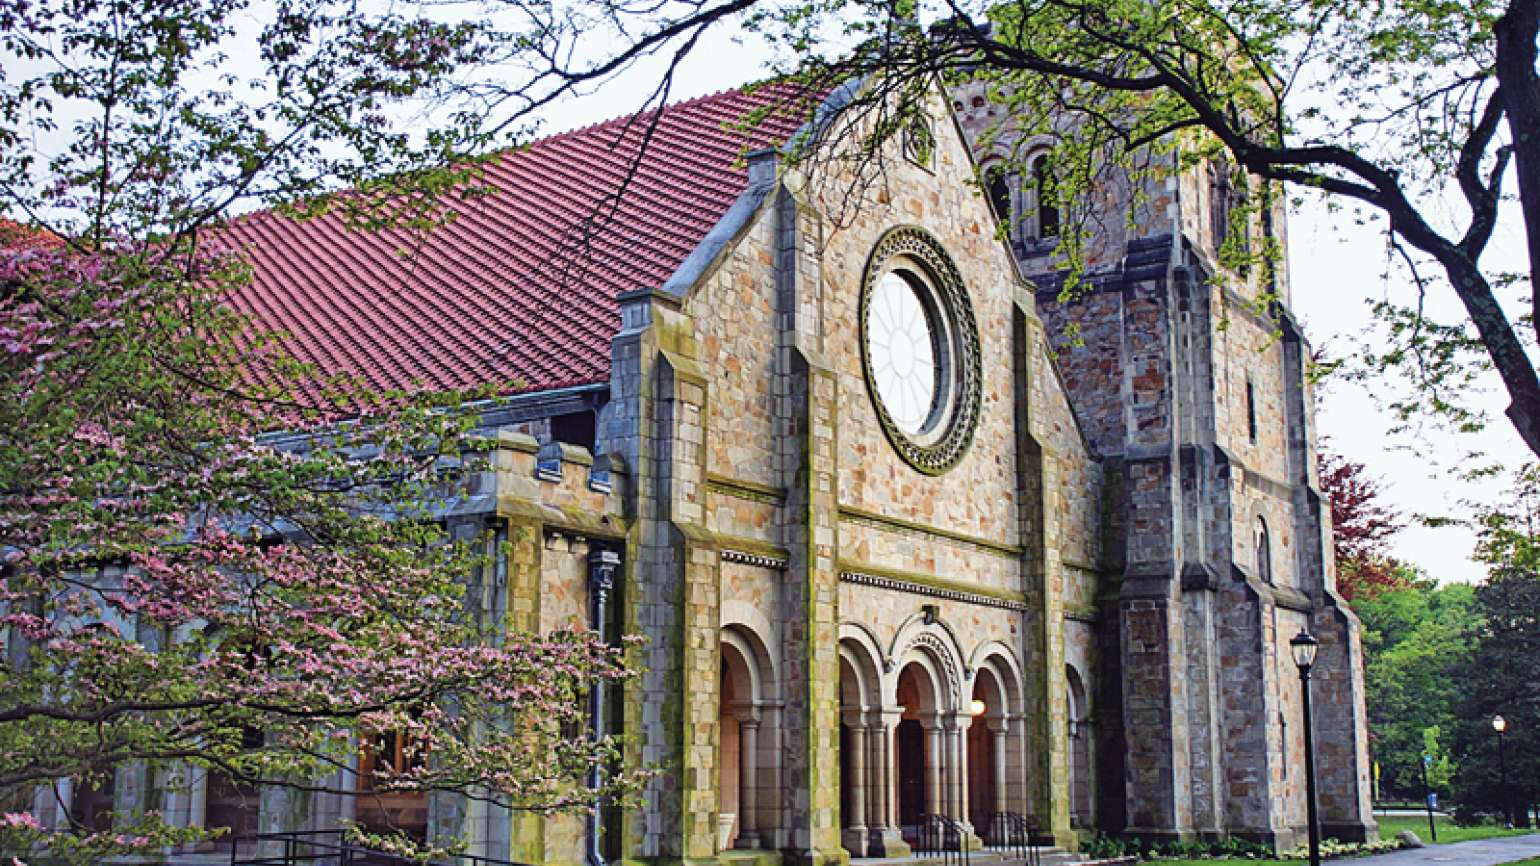 The campus chapel where Stacey found solace